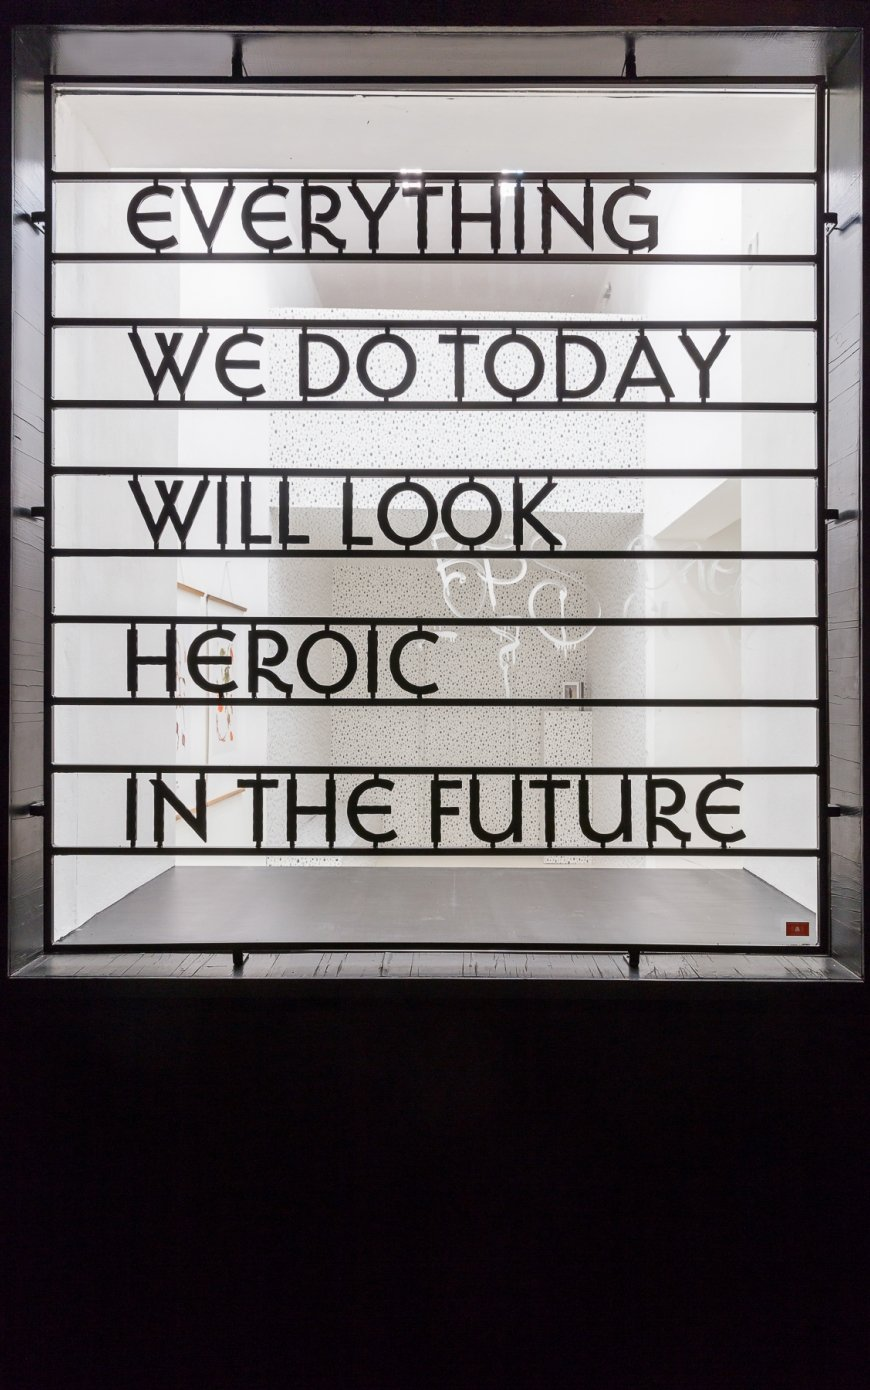 Jasmina Cibic, Everything We Do Today Will Look Heroic in The Future, 2018, iron, 177 x 158 x 6 cm